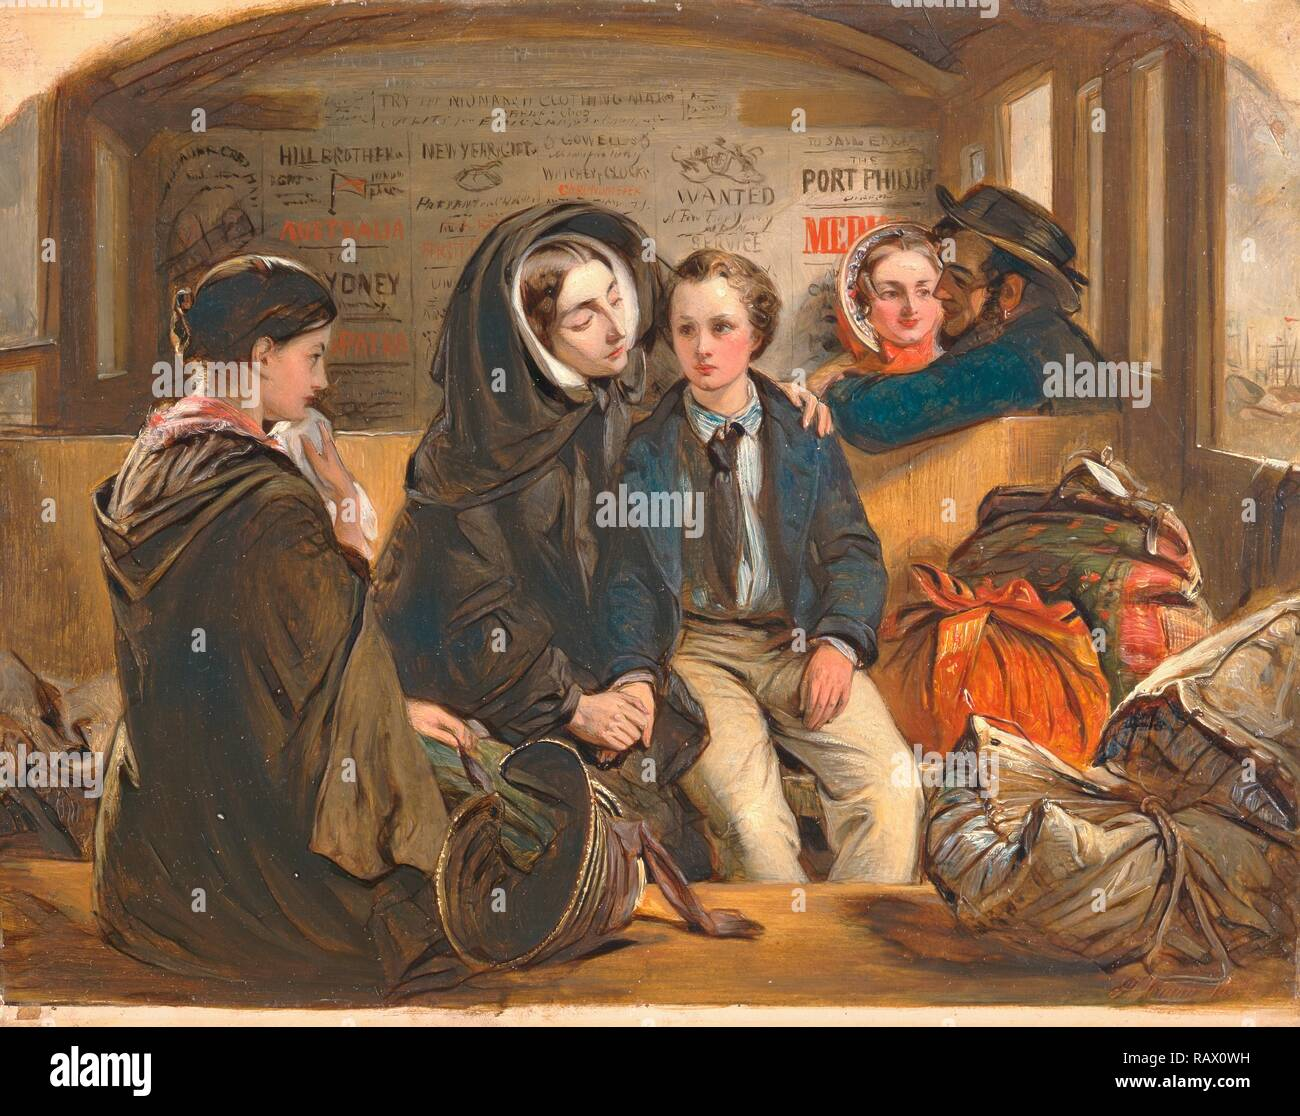 Second Class - The Parting. 'Thus part we rich in sorrow, parting poor.' Third Class - The Parting, Railway journey reimagined - Stock Image